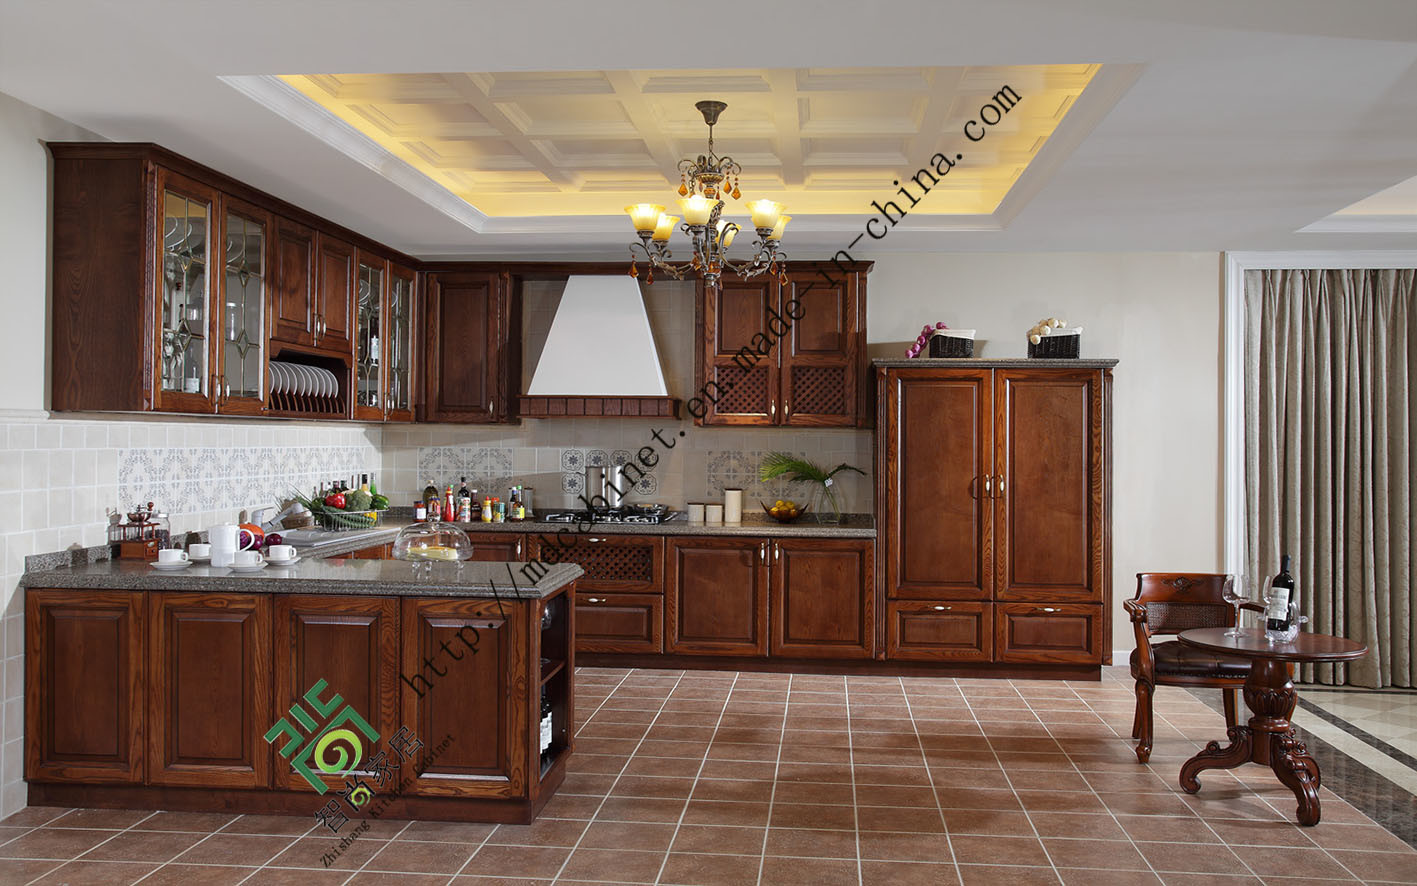 Equisite Classic Style Solid Wood Kitchen Cabinet (zs-031)에사진 kr.Made-in-China.com